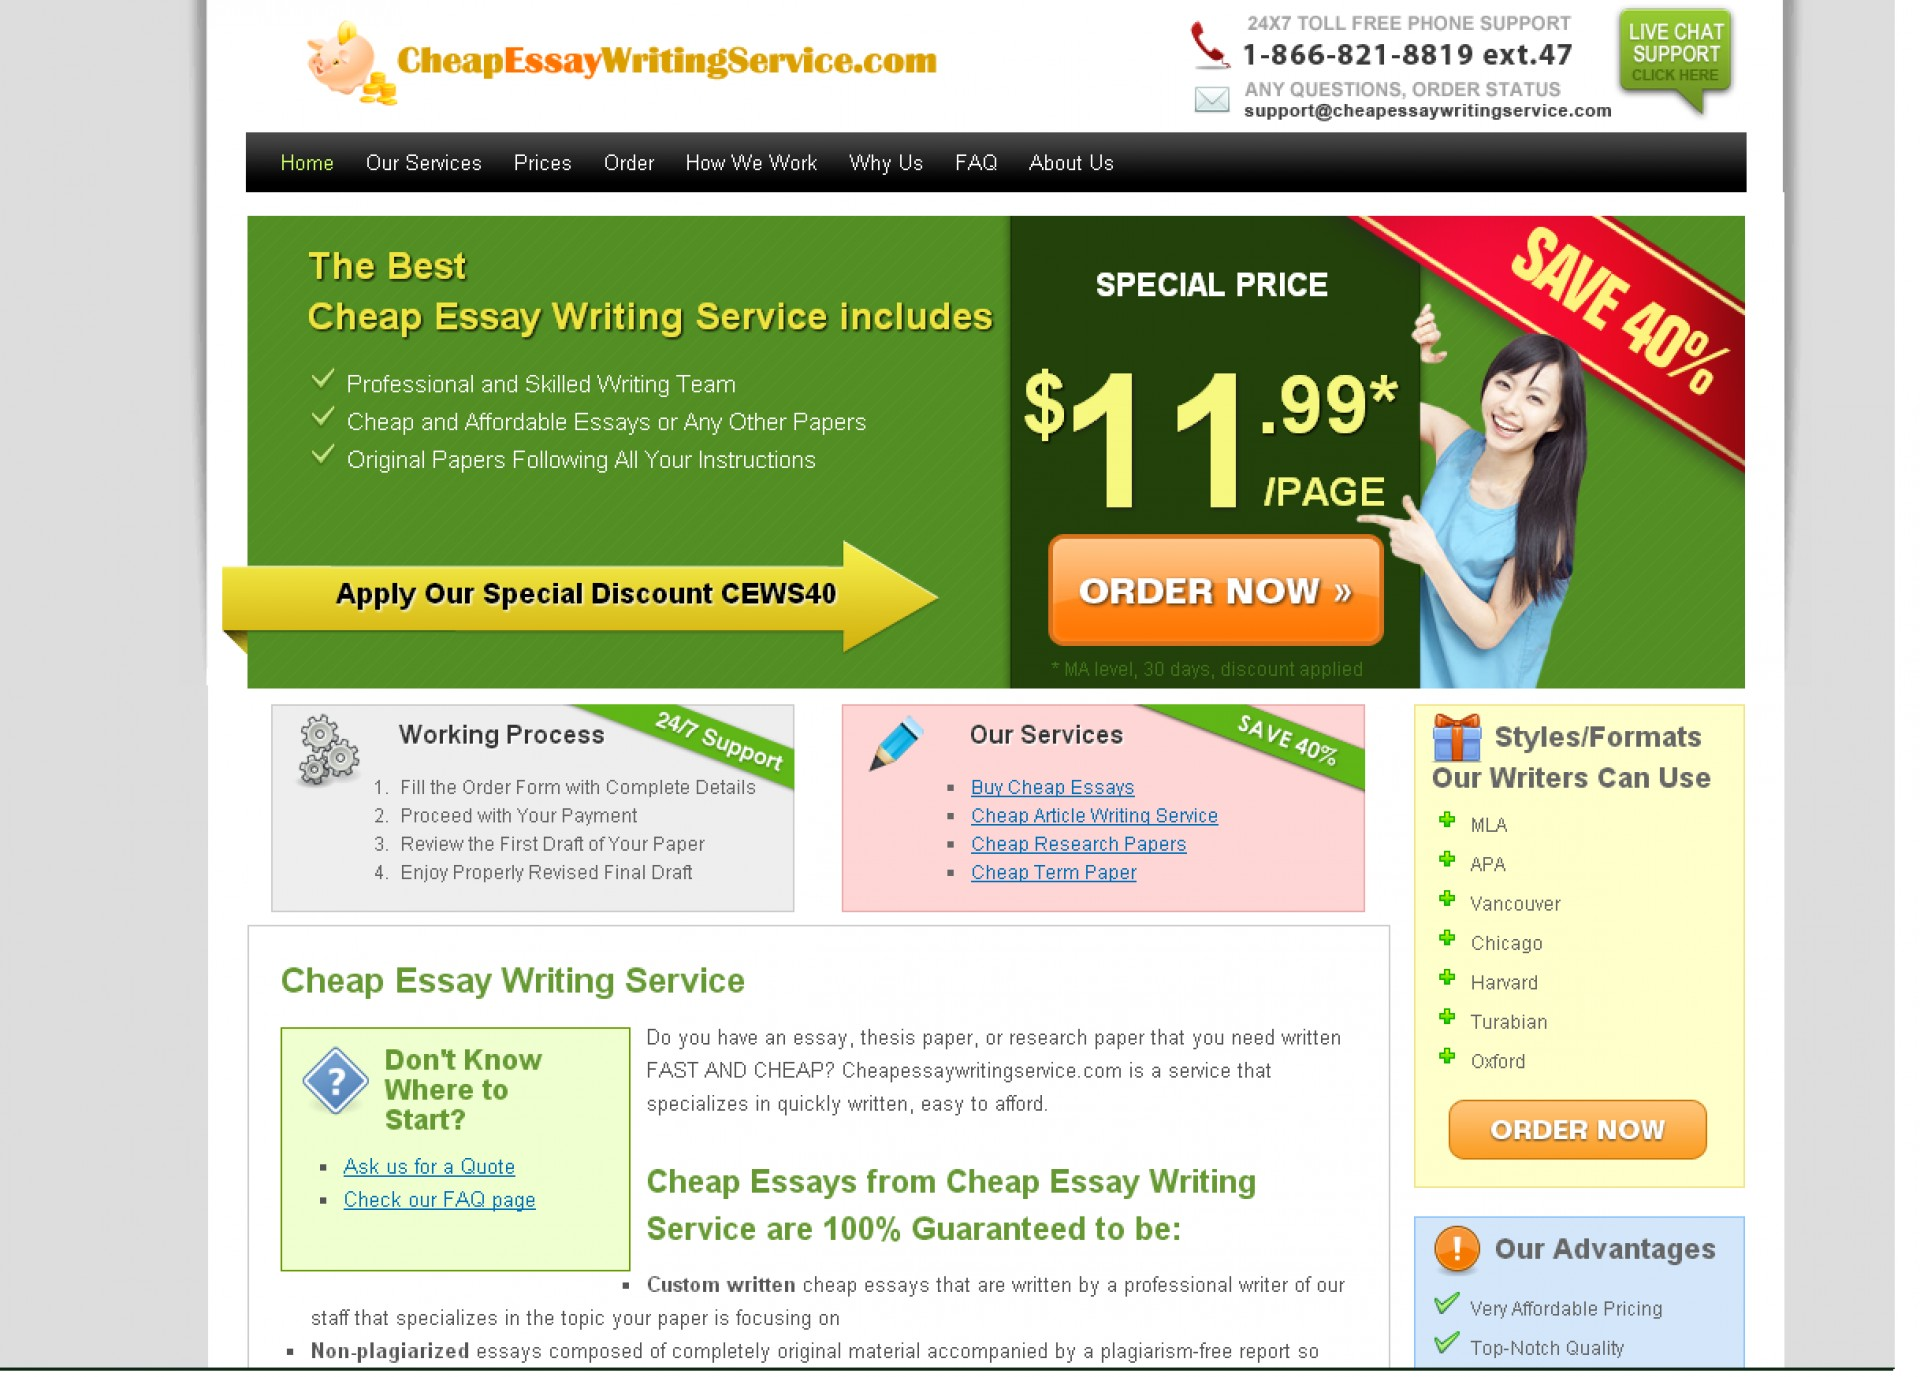 019 Essay Example Review Service Cheapessaywritingservice Wonderful College Services Graduate School 1920